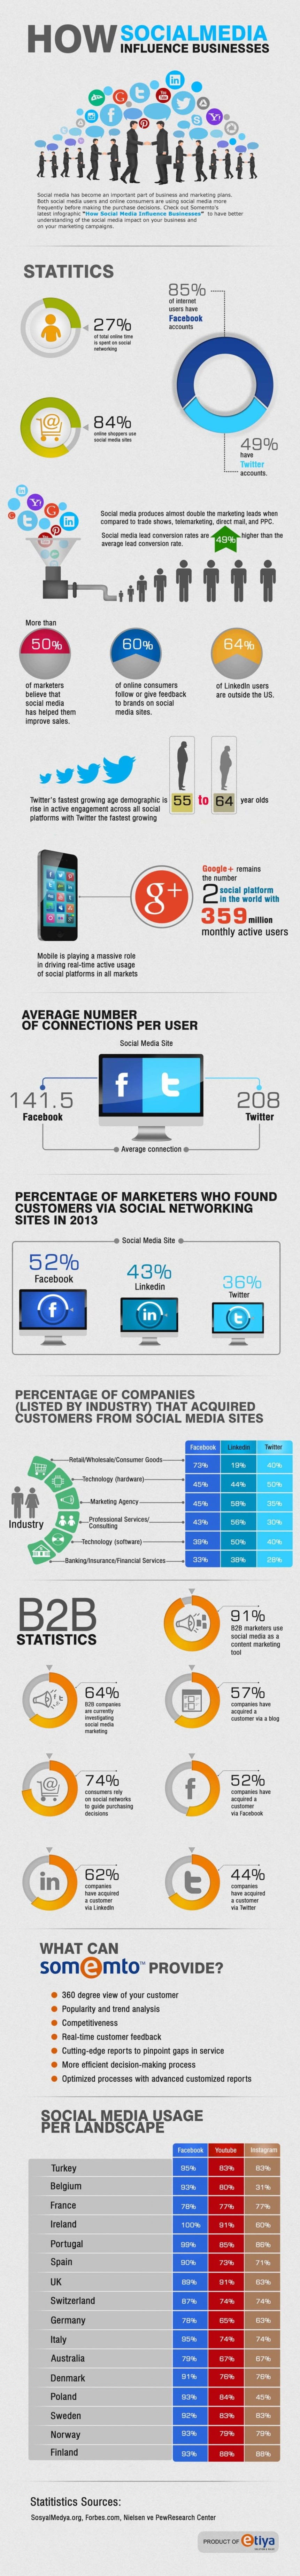 16. Social Media Influence on Businesses